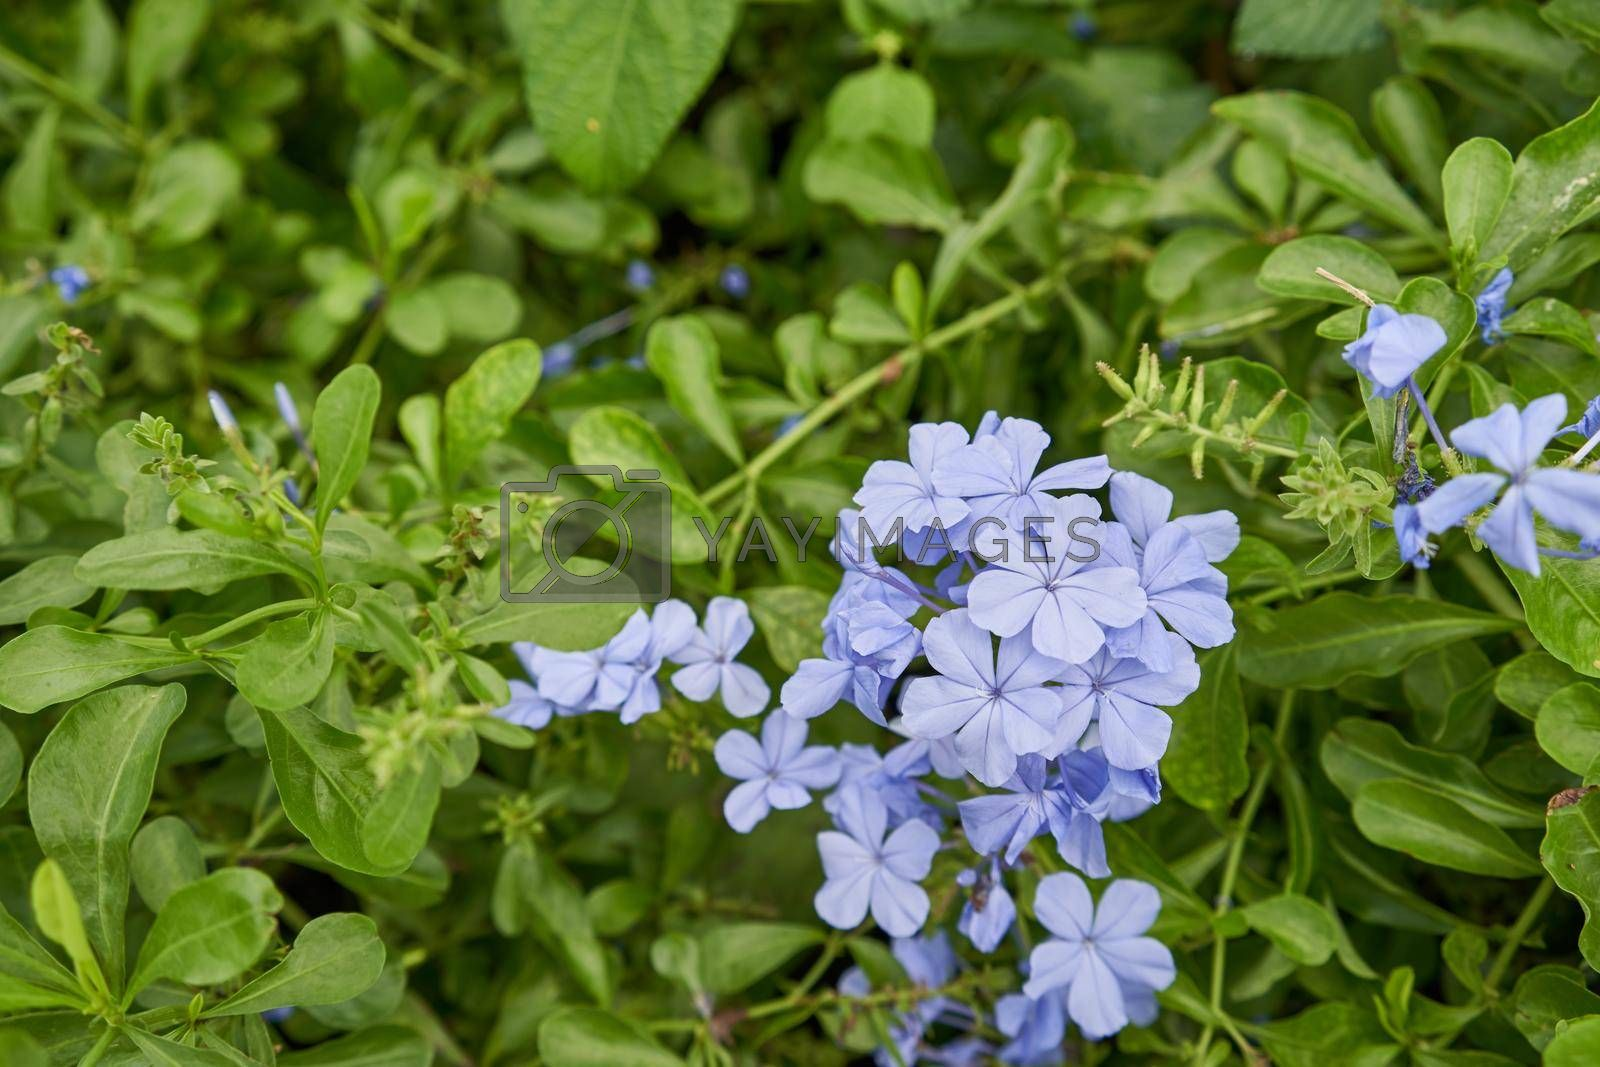 Royalty free image of Plumbago auriculata flowering plant in family Plumbaginaceae at outdoor garden by eaglesky